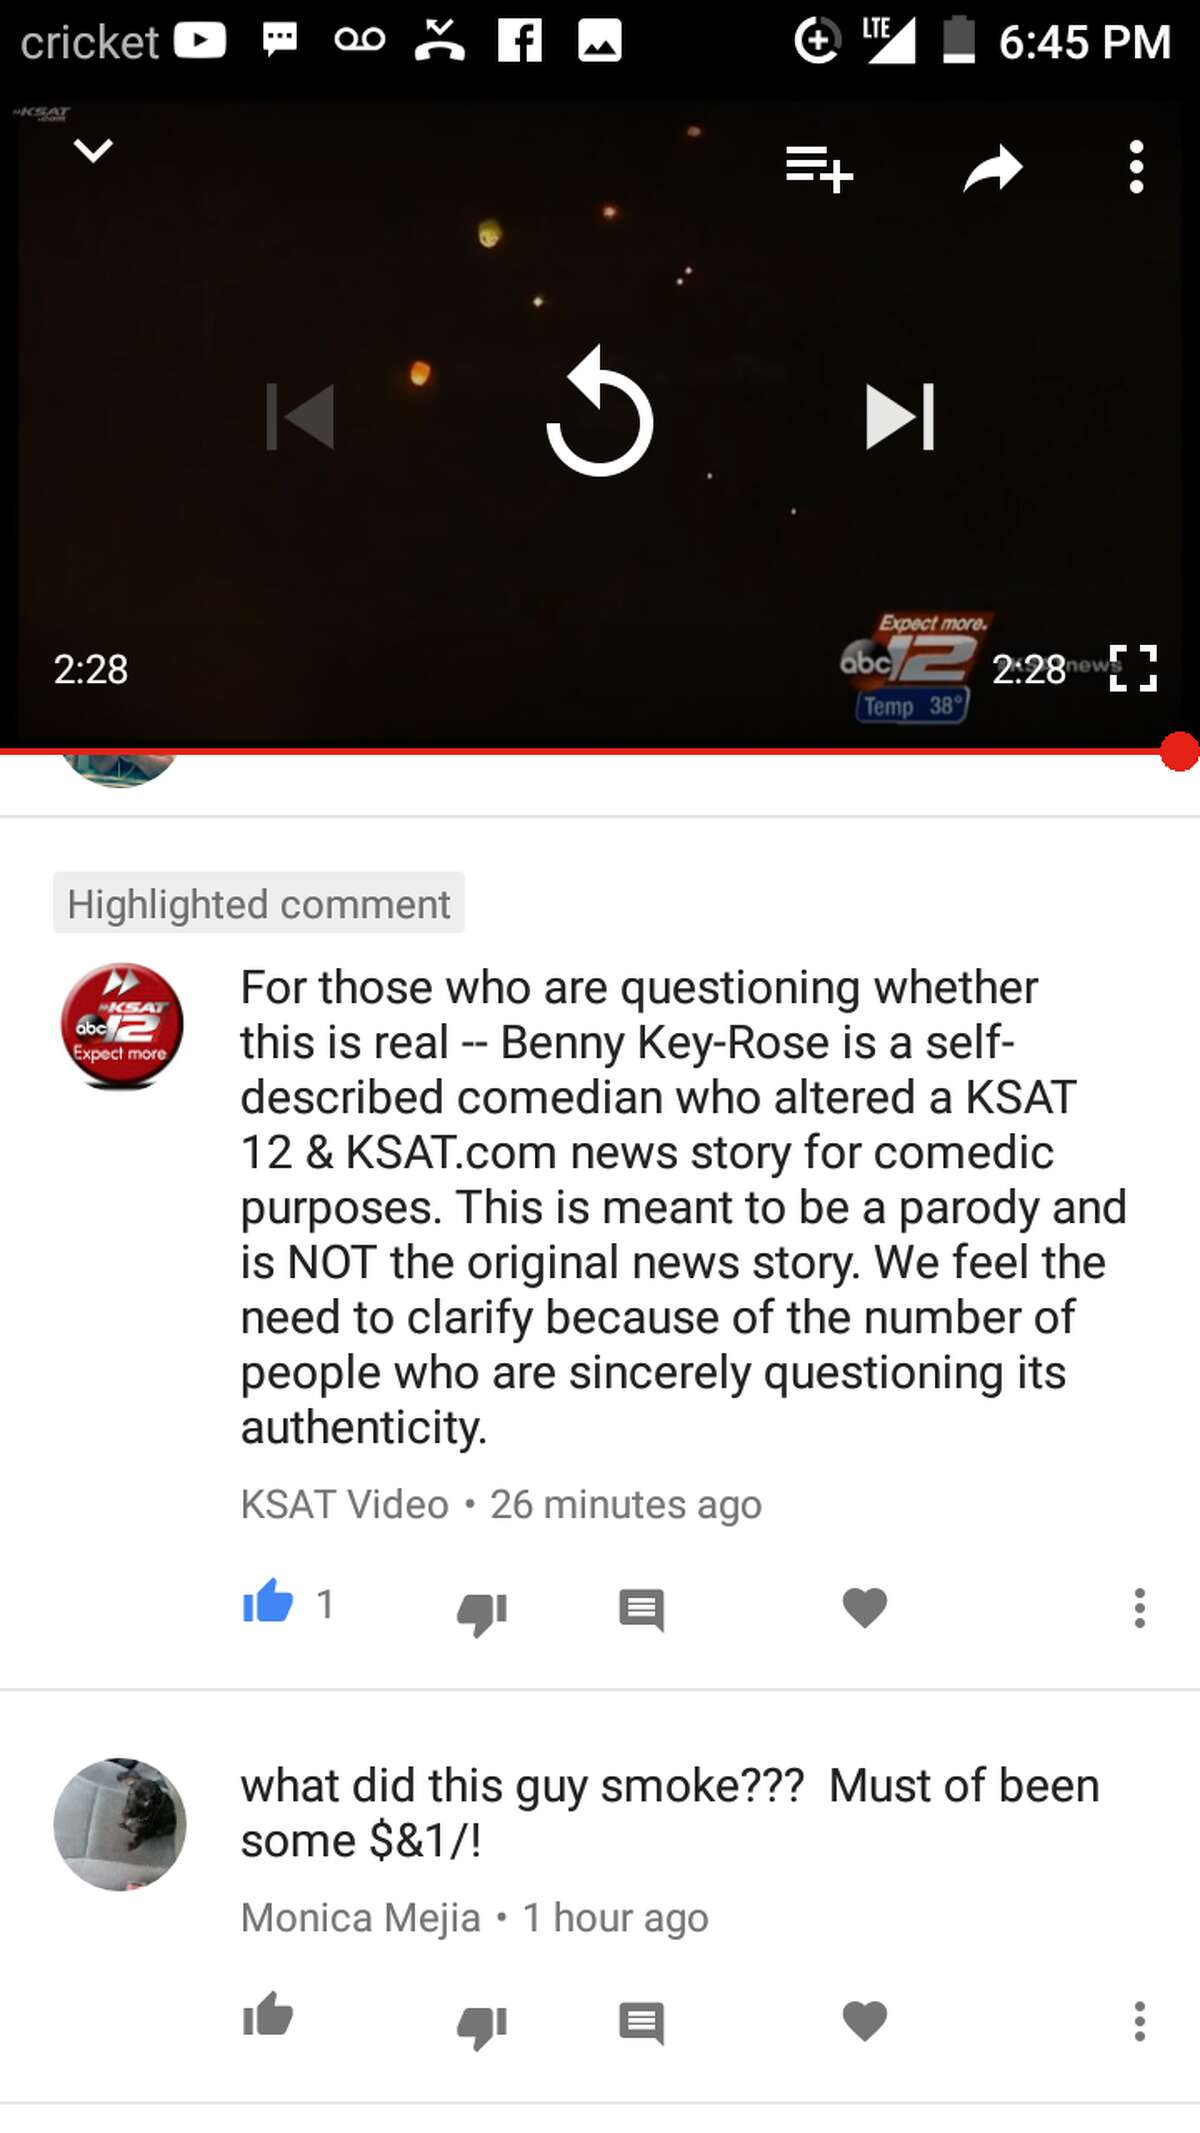 Benny Quiroz shared a screengrab with mySA.com of YouTube notification showing KSAT's response to his parody video which clarifies it was